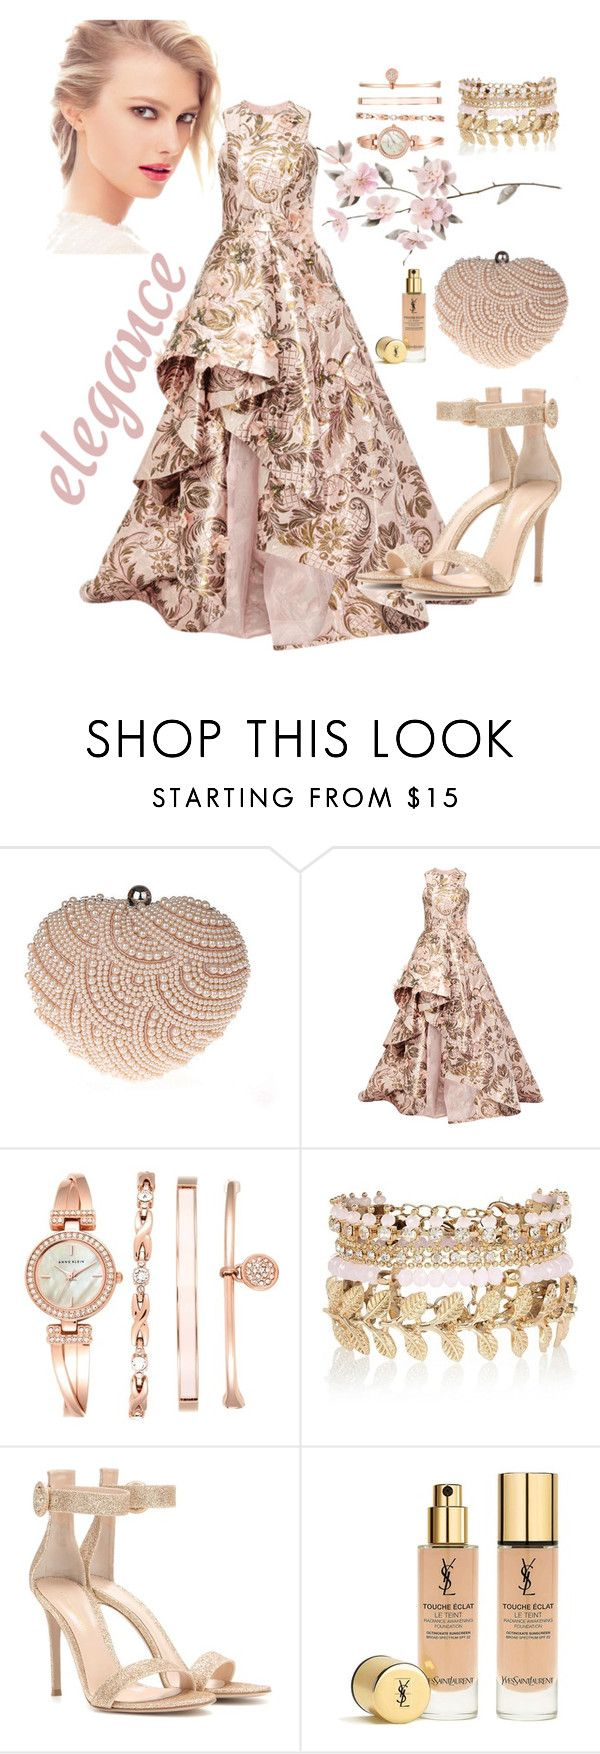 """Elegant Dress"" by grinevagh ❤ liked on Polyvore featuring Glam Cham, Monique Lhuillier, Chanel, Anne Klein, River Island, Gianvito Rossi and Yves Saint Laurent"